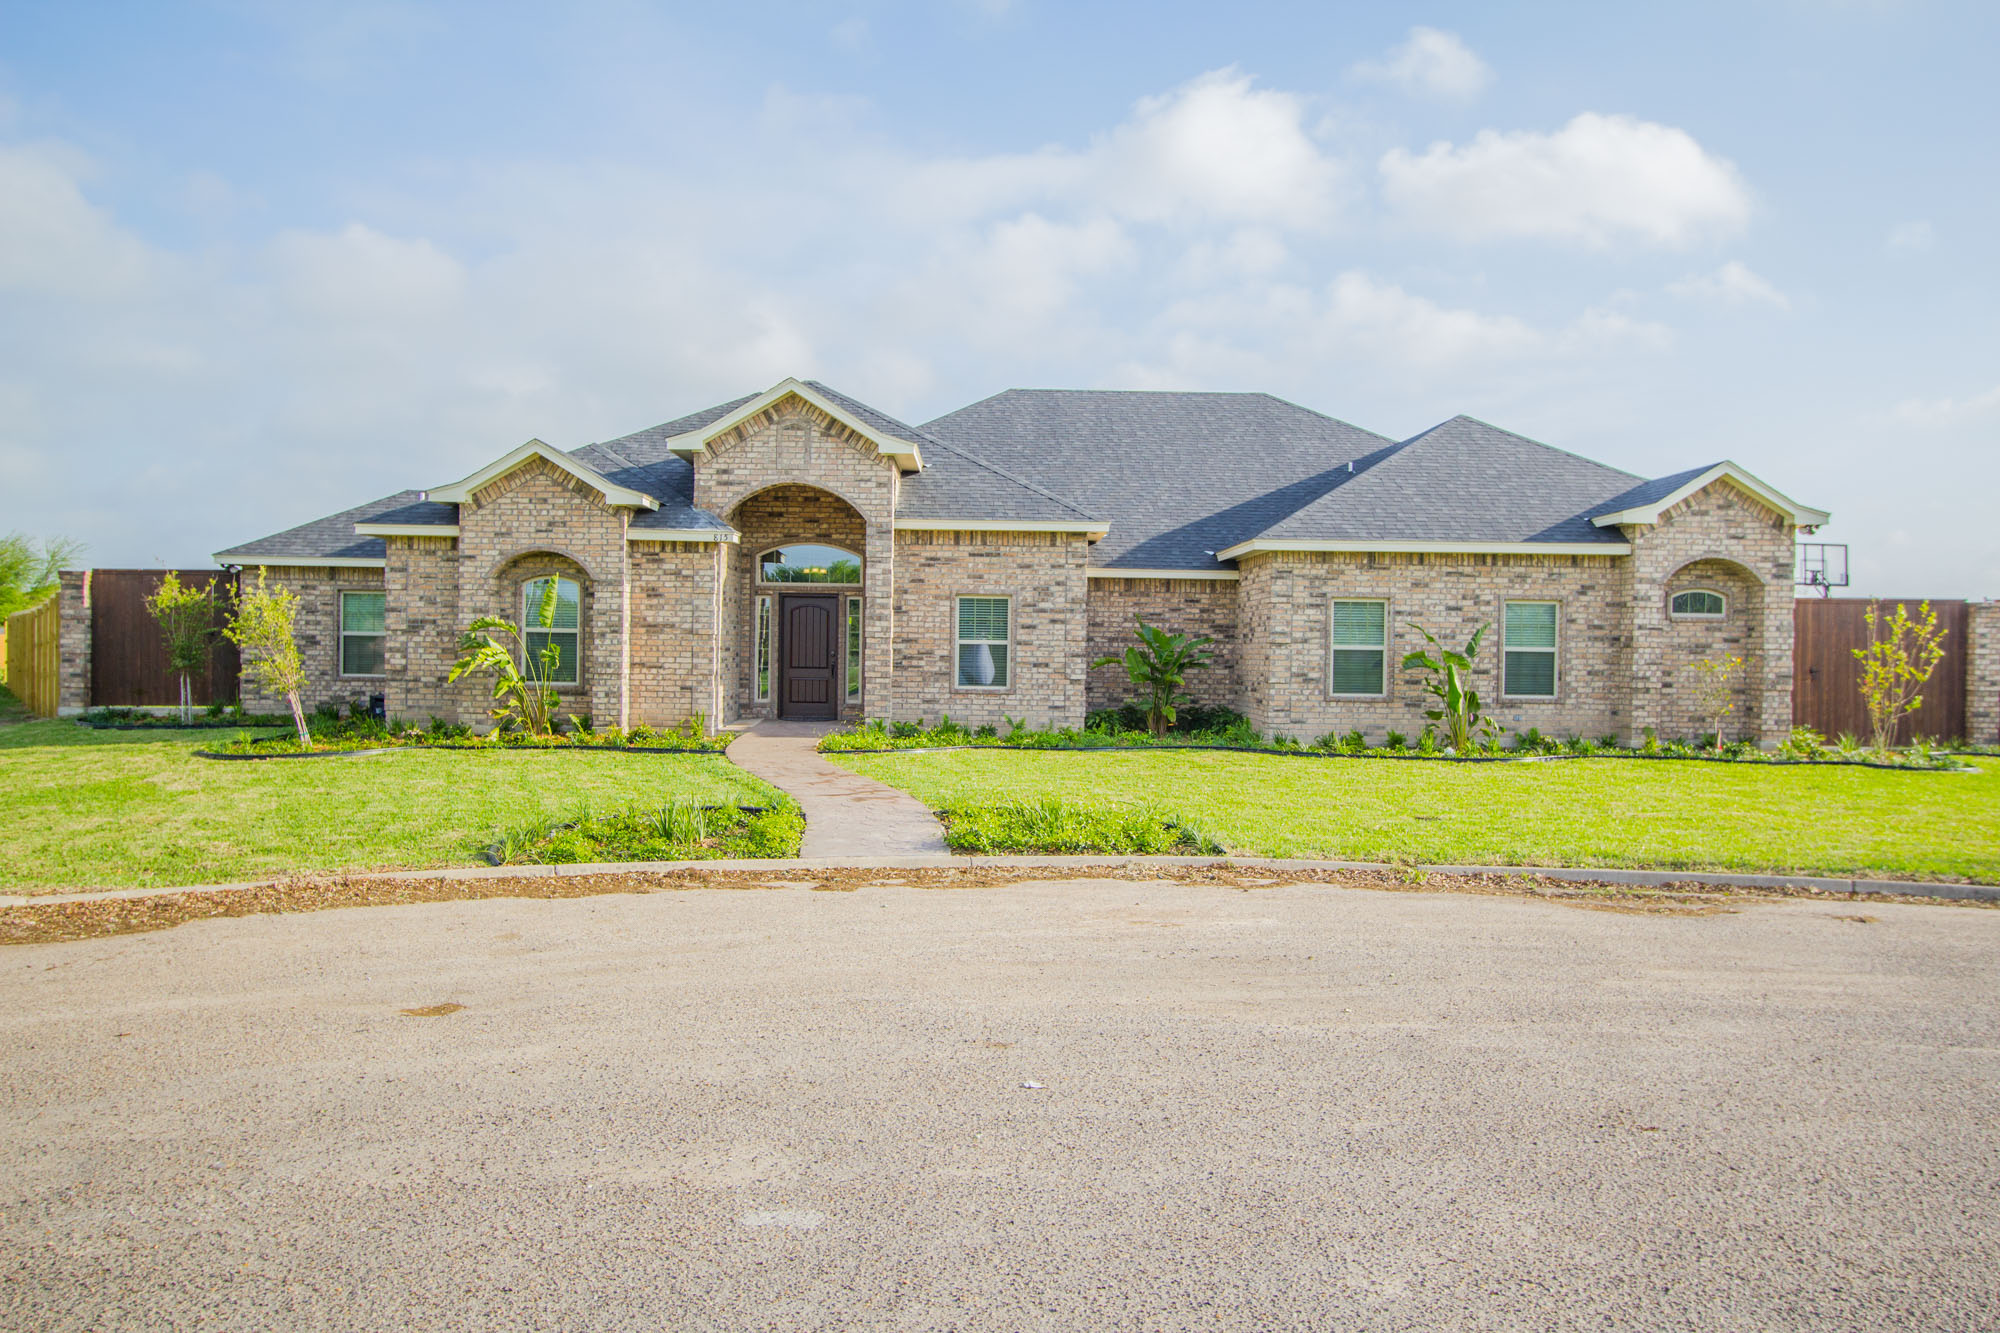 Camino Real Builders, New homes for sale in Mcallen